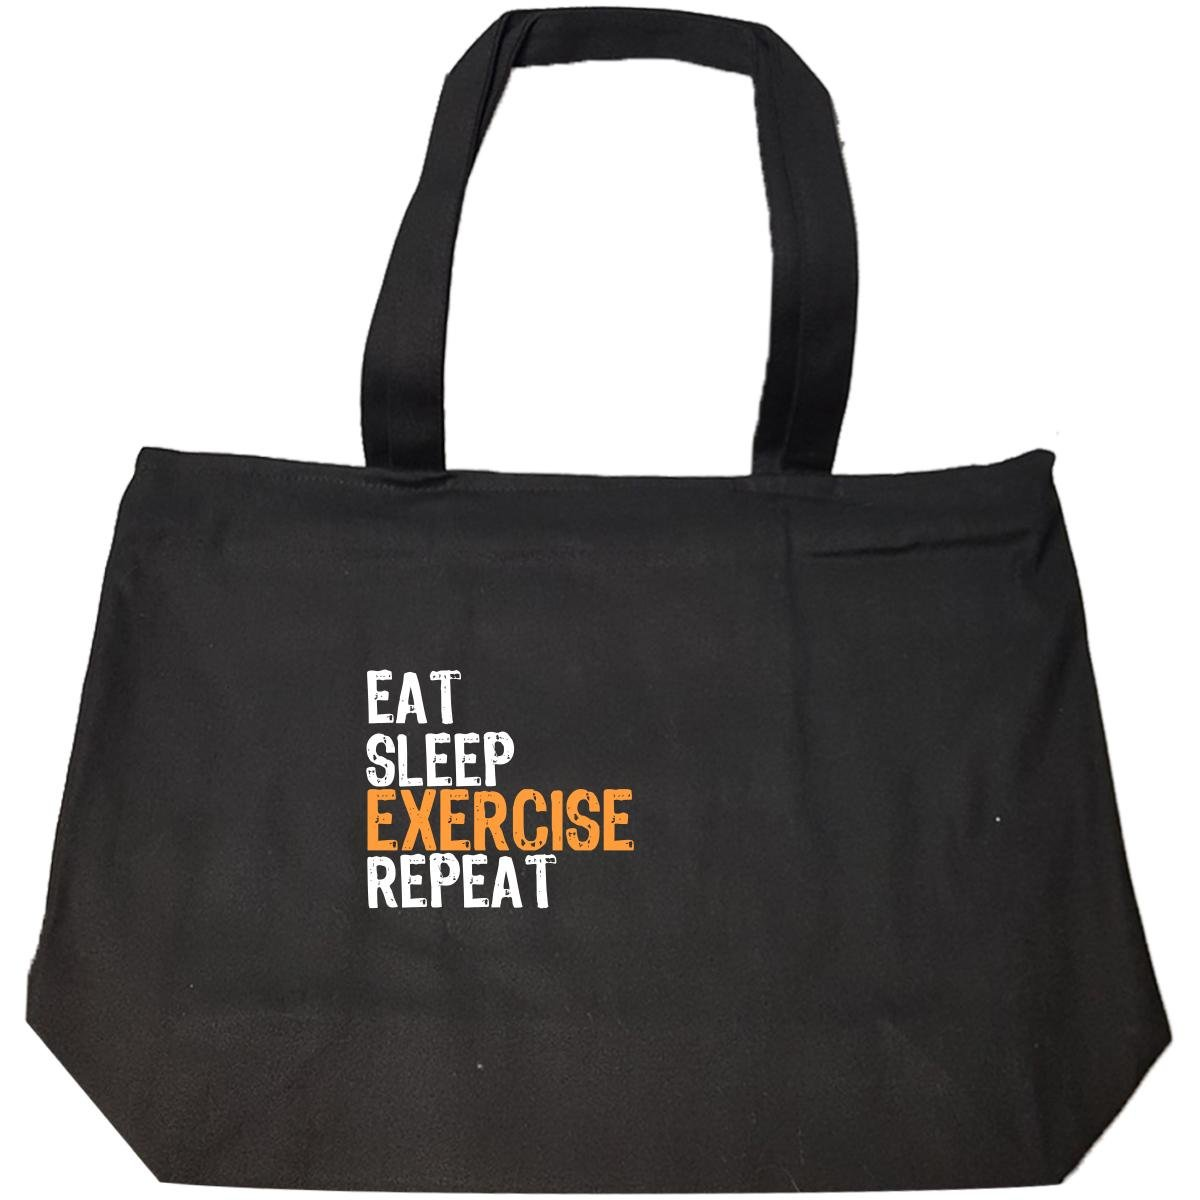 Eat Sleep Exercise Repeat - Tote Bag With Zip